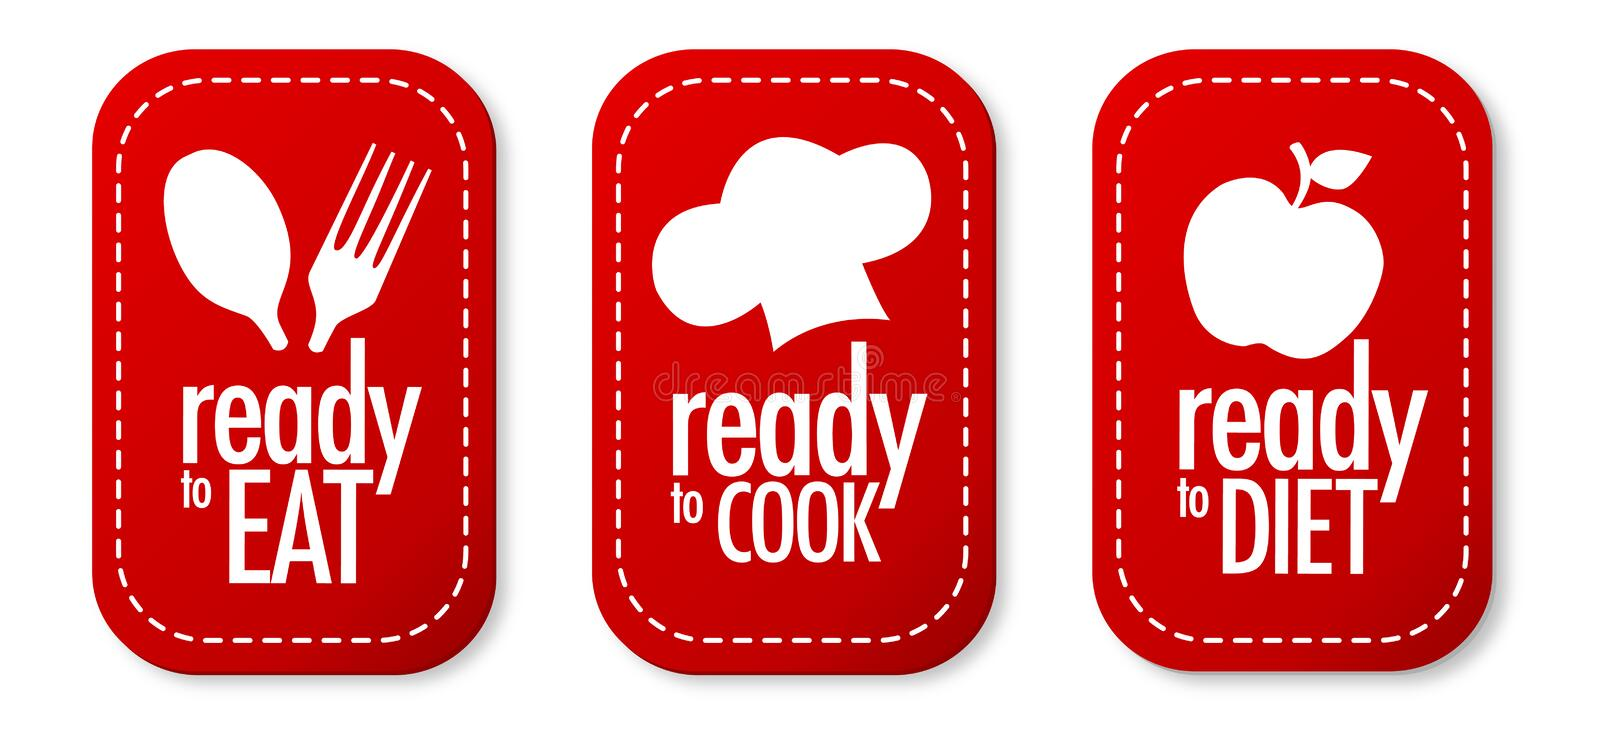 Ready to eat, diet and cook stickers royalty free illustration